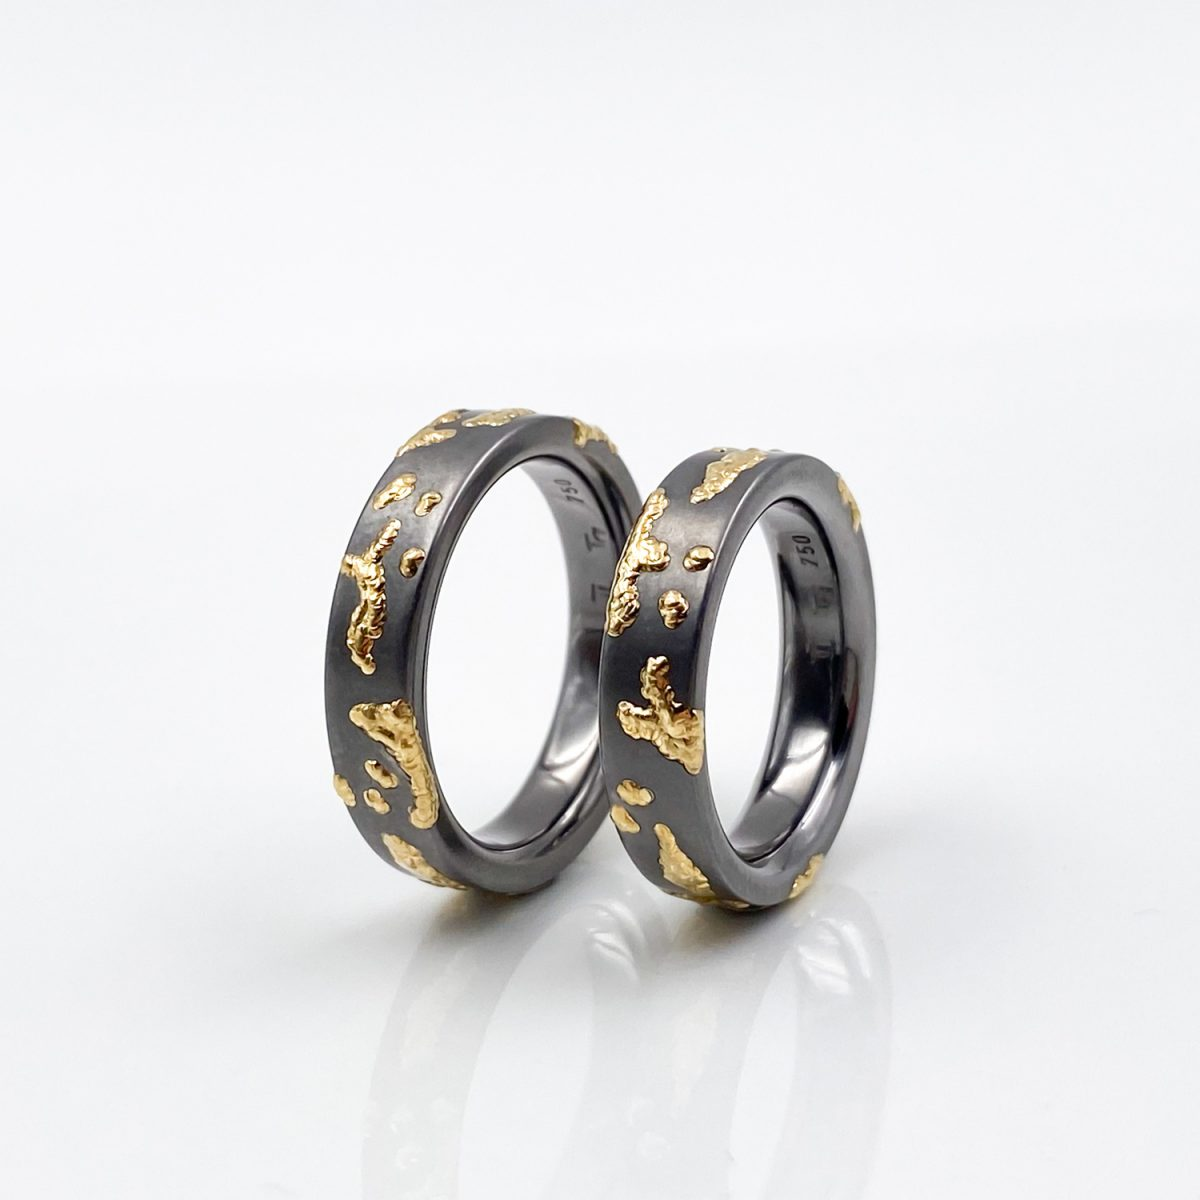 Tantal Ringpaar Tantalum Ringe True Love Collection No.23